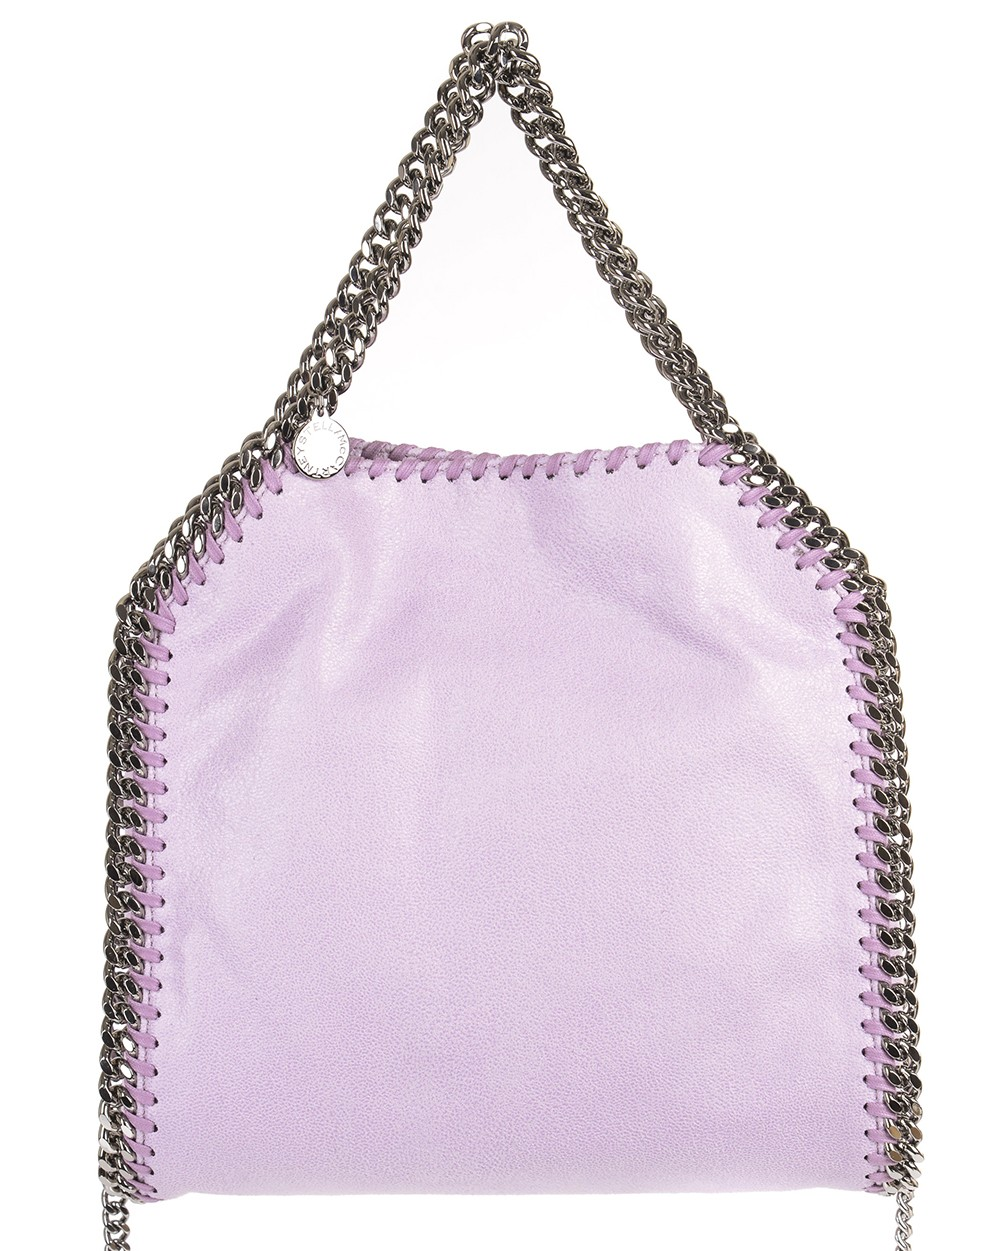 STELLA MCCARTNEY BORSA MINI TOTE FALABELLA 371223W9132